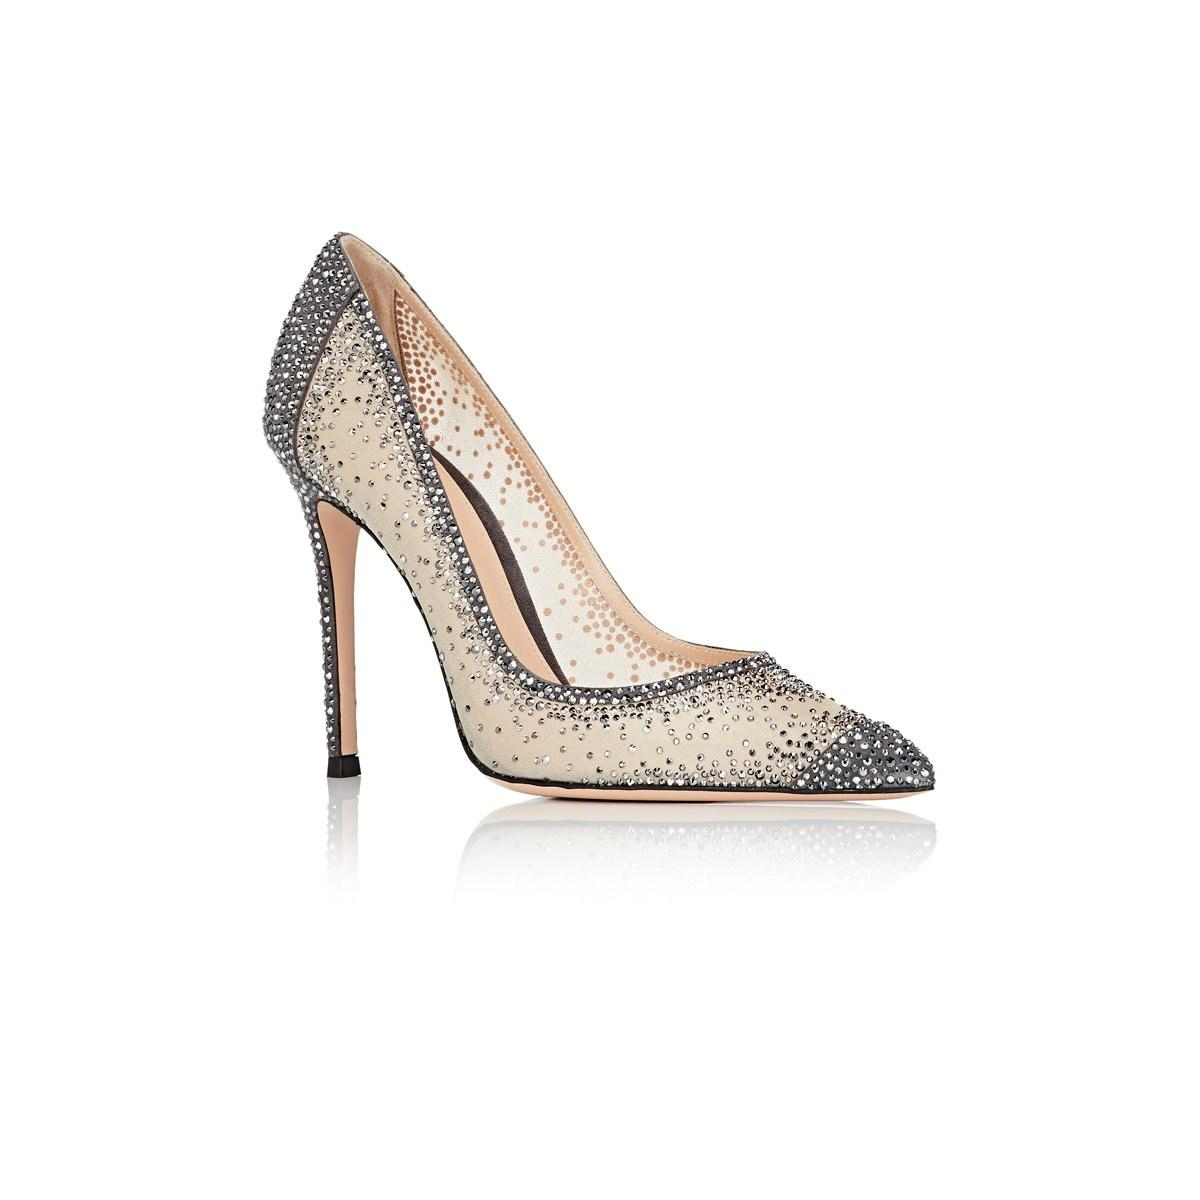 3336dfd5c6c1 Gianvito Rossi - Gray Rania Crystal-embellished Pumps - Lyst. View  fullscreen